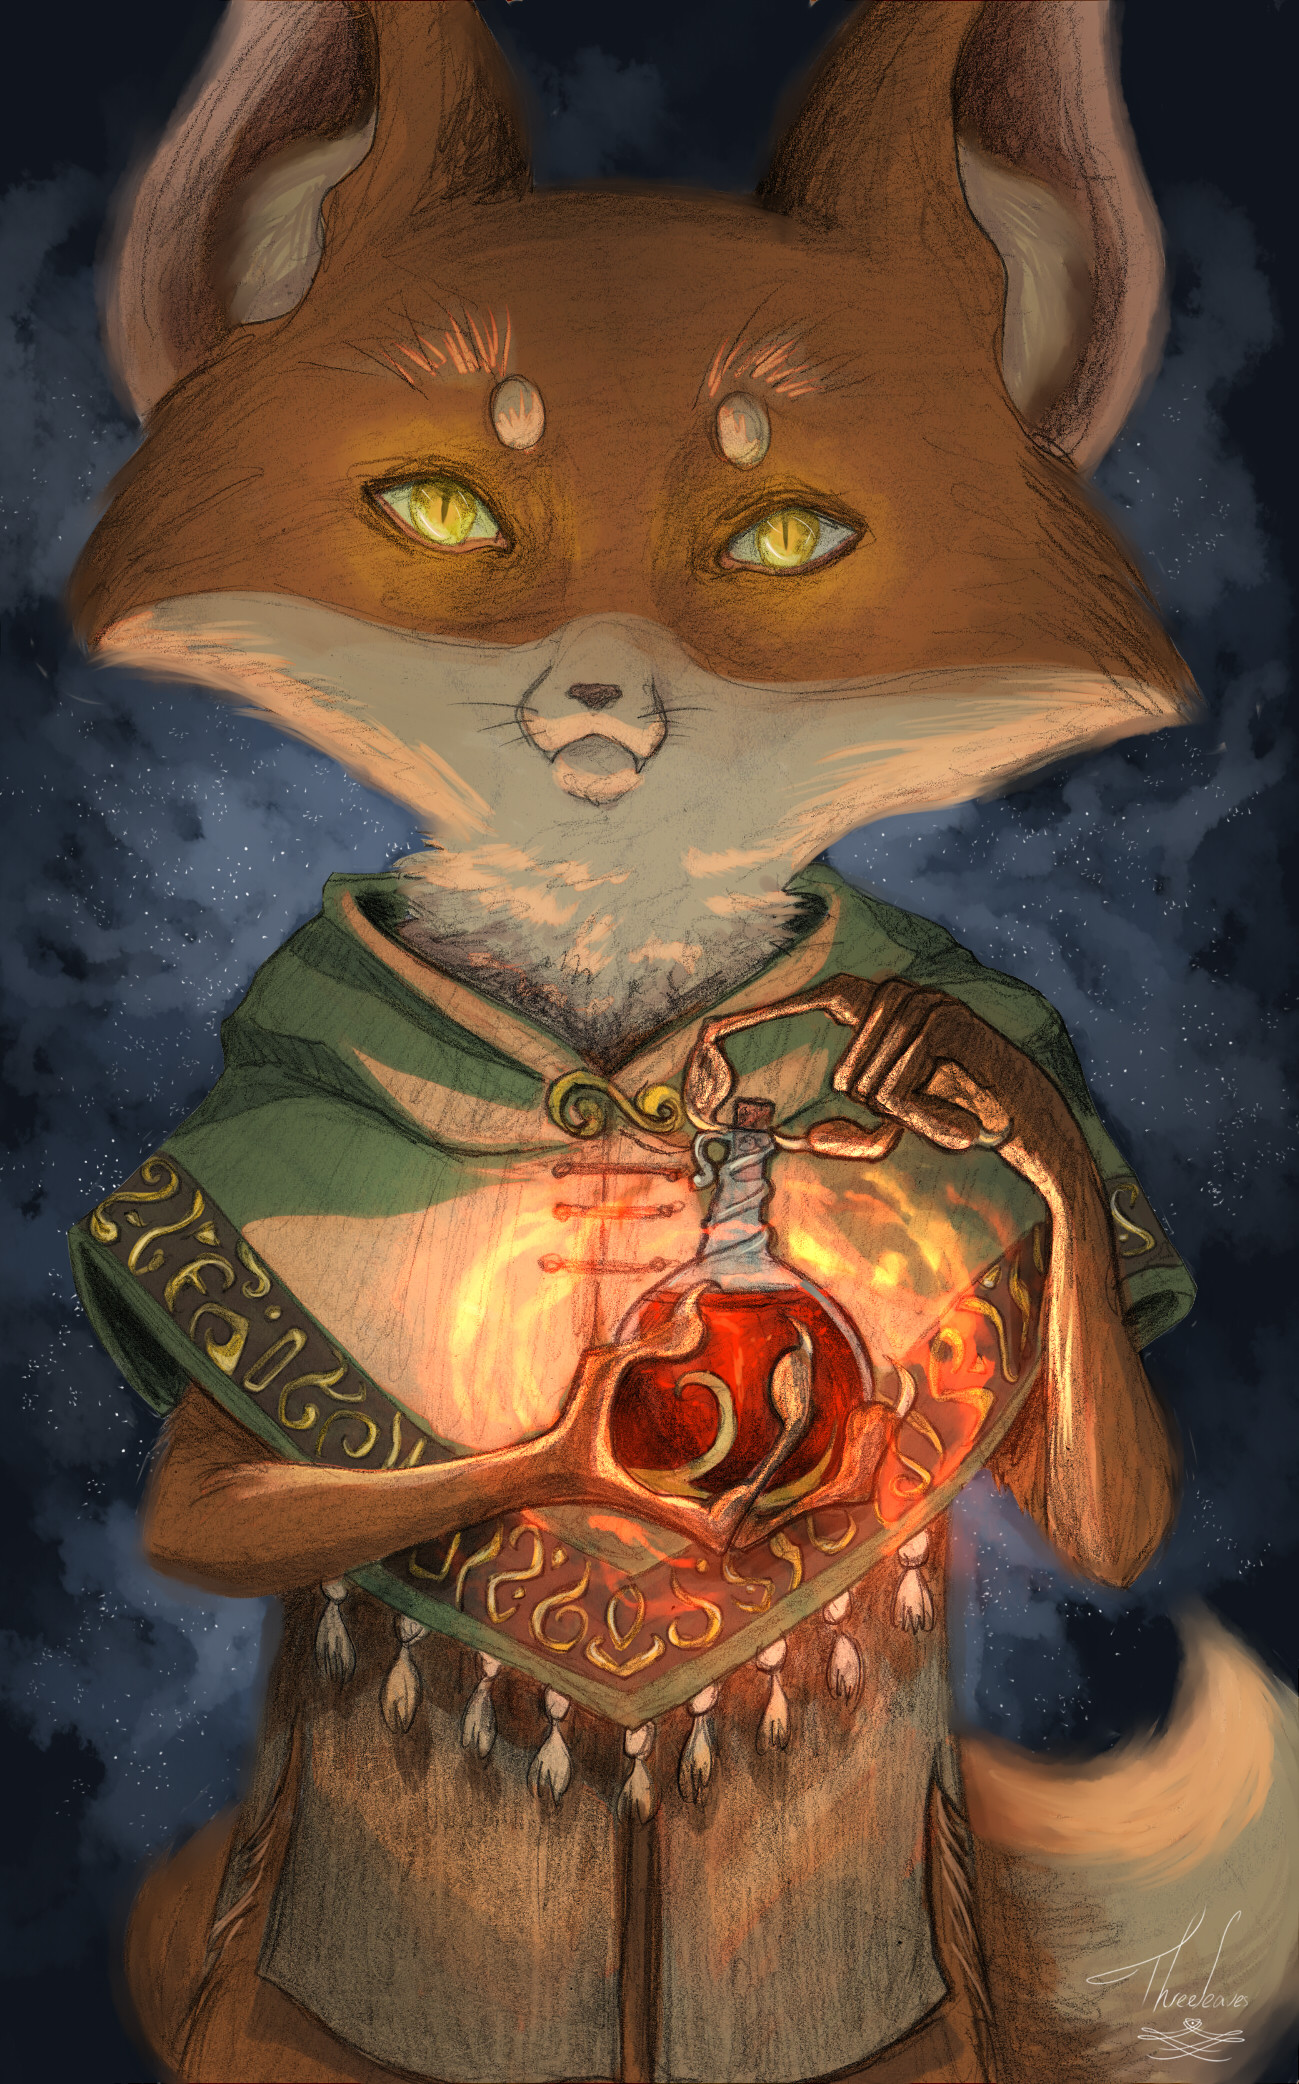 Fantasy illustration of a fox and a magic potion.